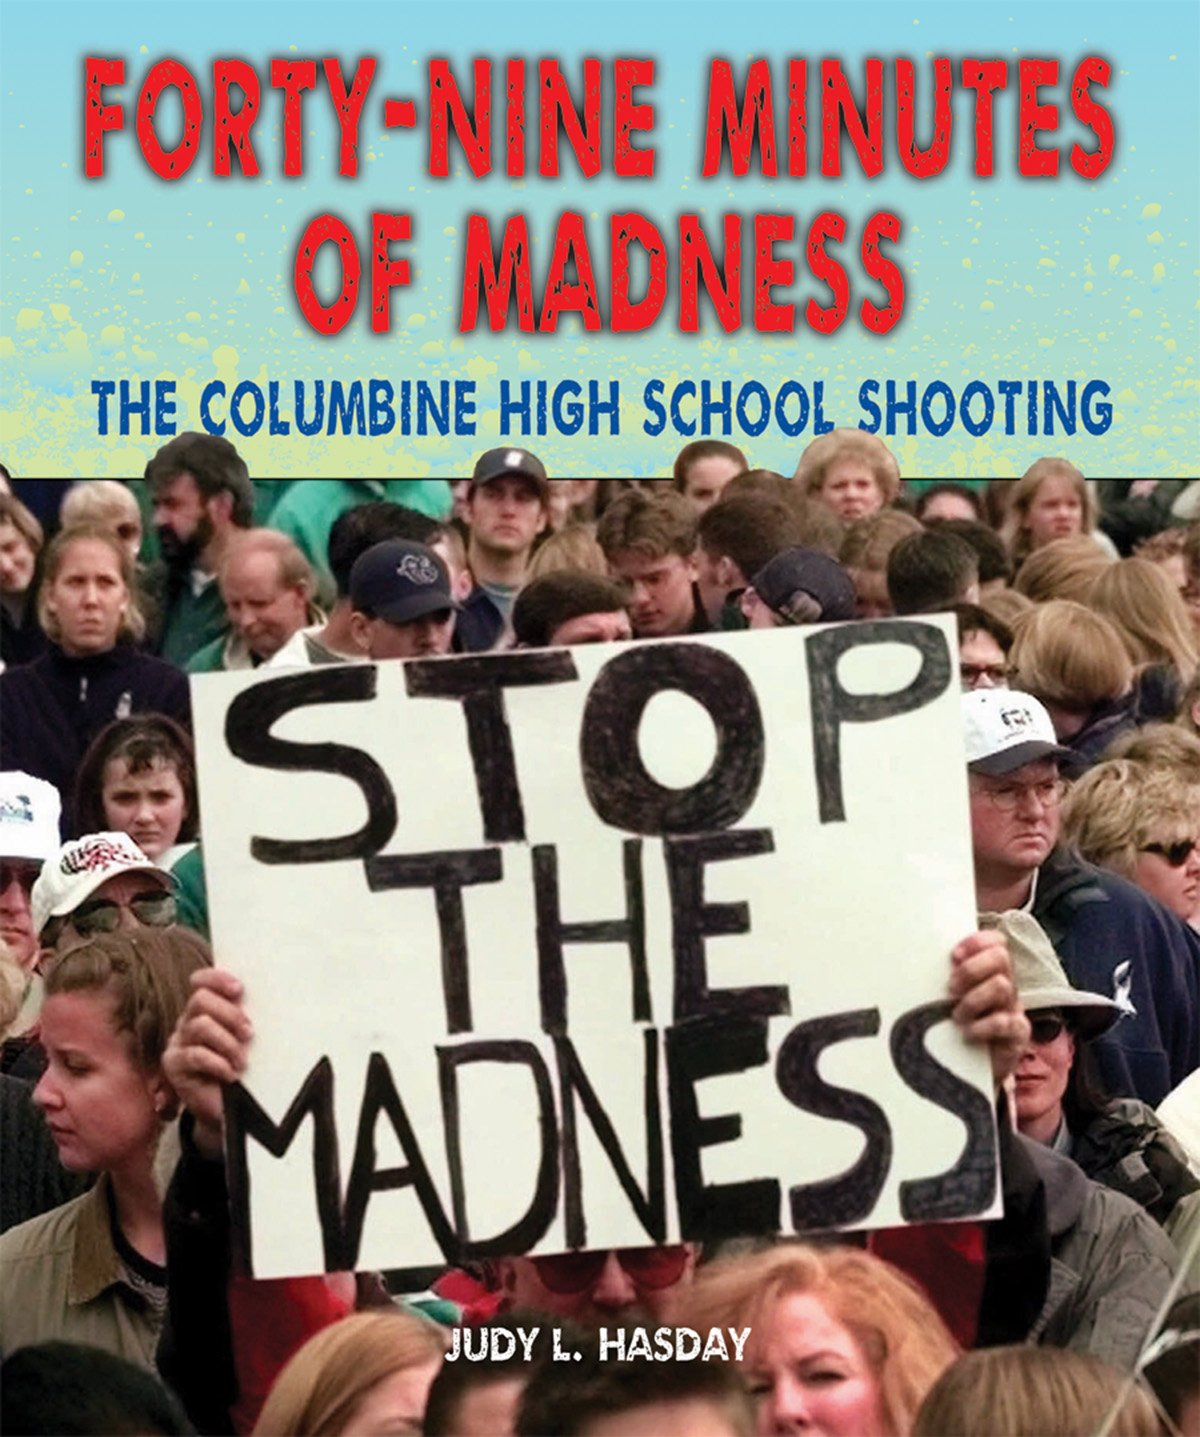 Fortynine Minutes Of Madness: The Columbine High School Shooting  (disasterspeople In Peril): Judy L Hasday: 9781464401114: Amazon: Books